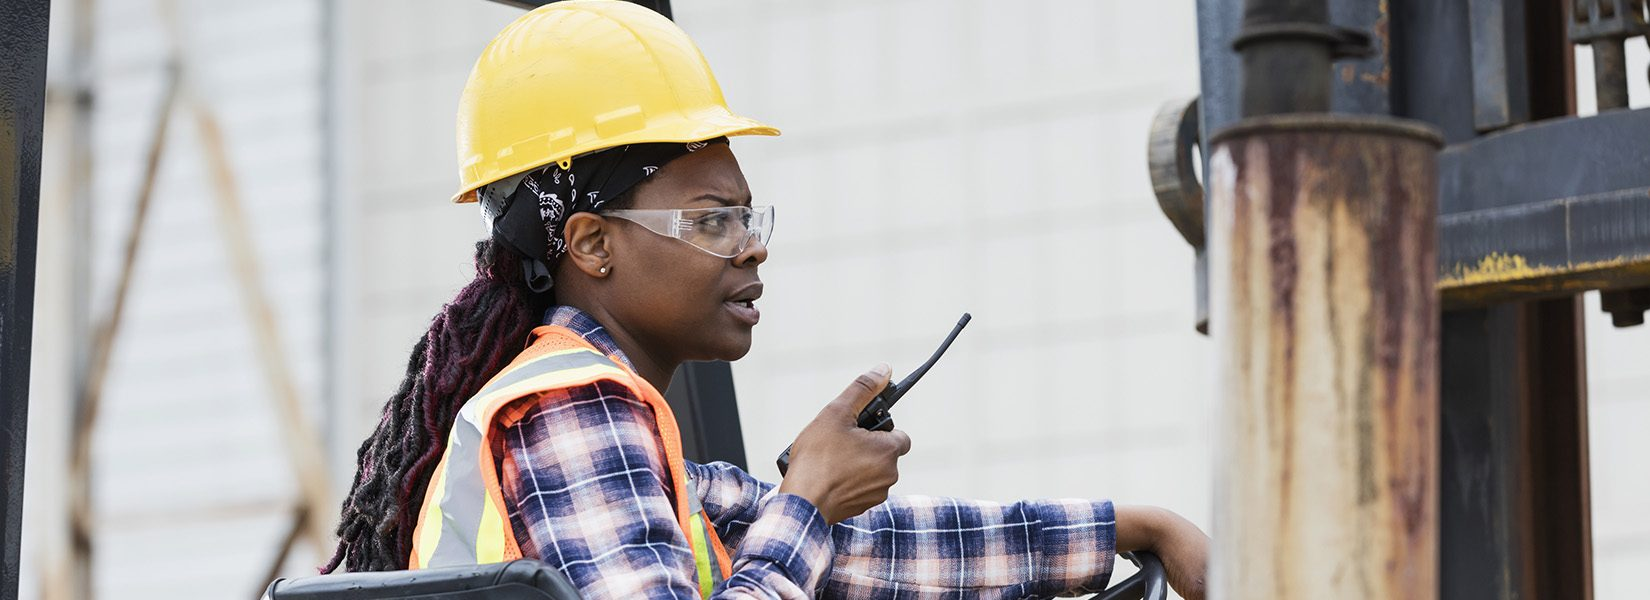 A young African-American woman in her 20s operating a forklift outside a warehouse. She is wearing a hard hat, safety glasses, reflective vest and plaid shirt, sitting in the driver's seat, talking on a walkie-talkie.